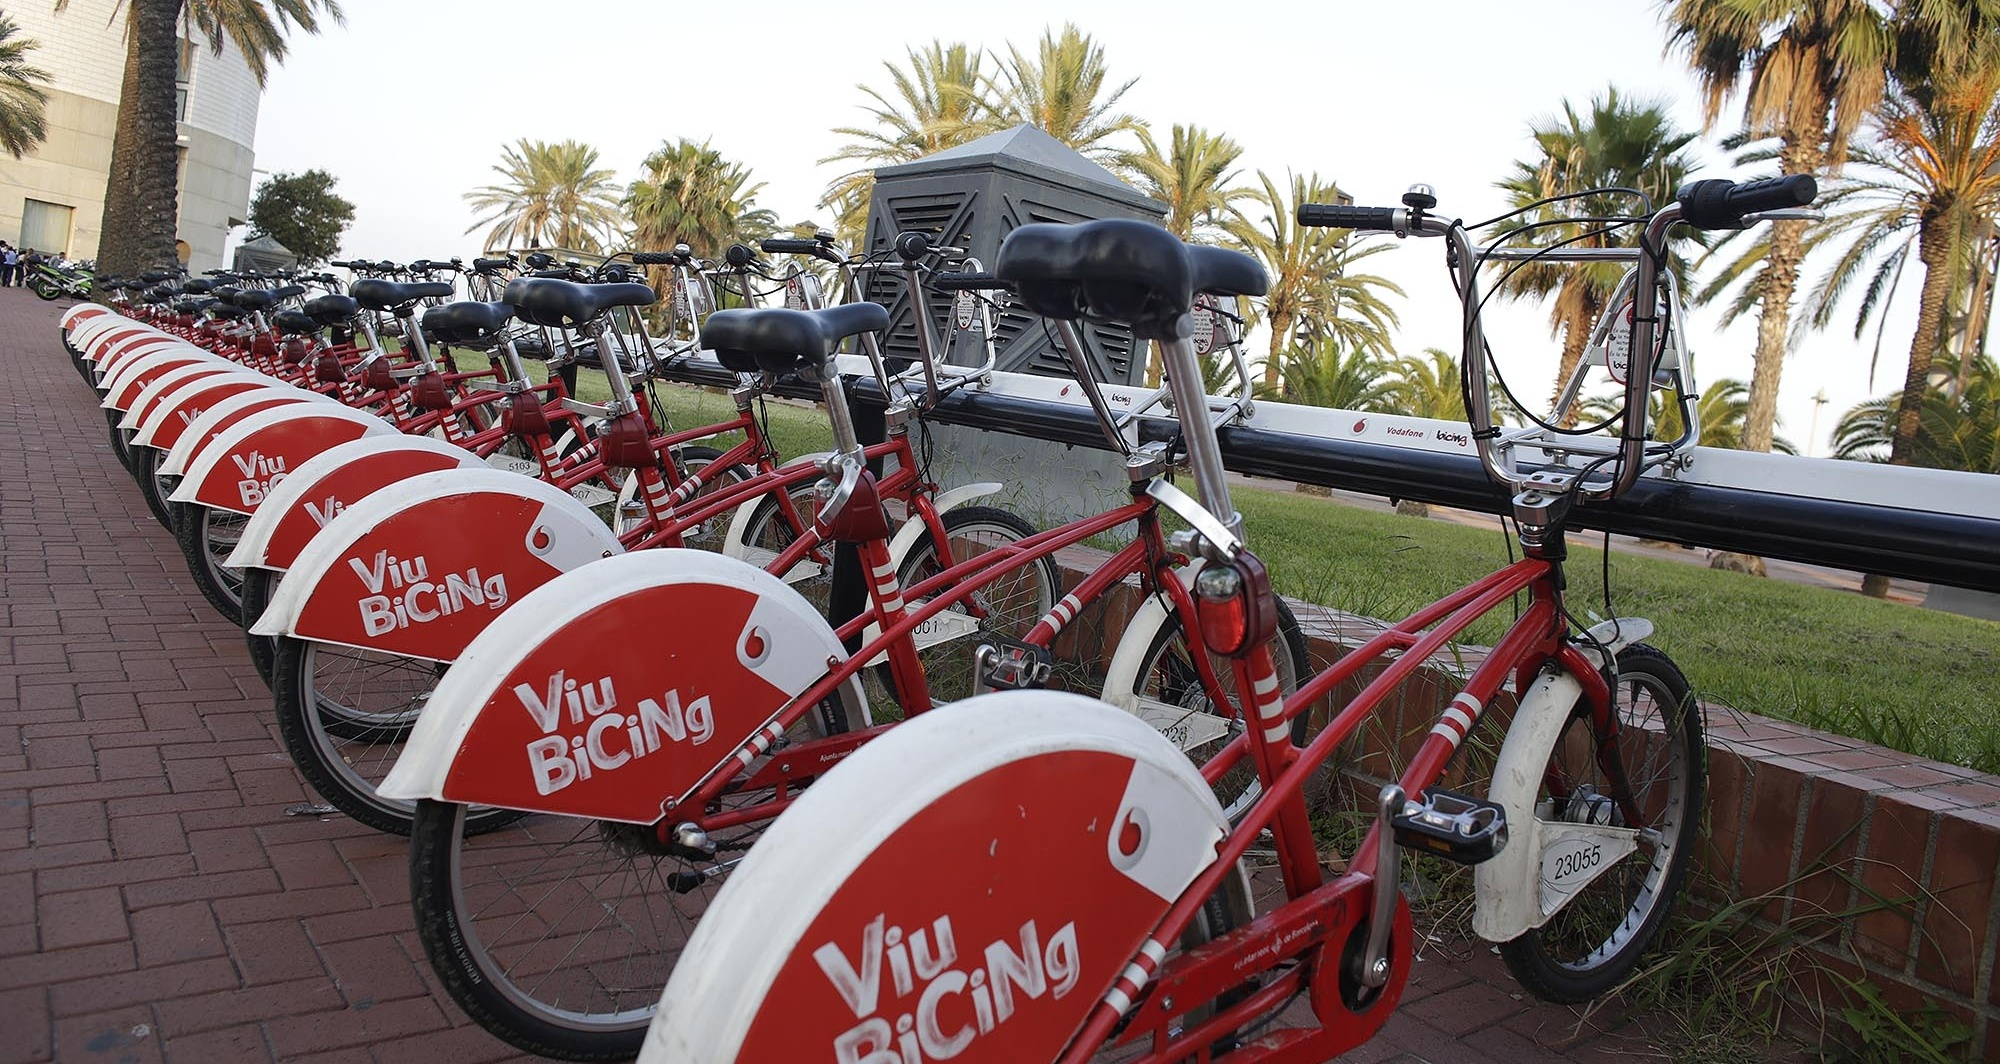 Barcelona has a shared biking system provided by Vodaphone